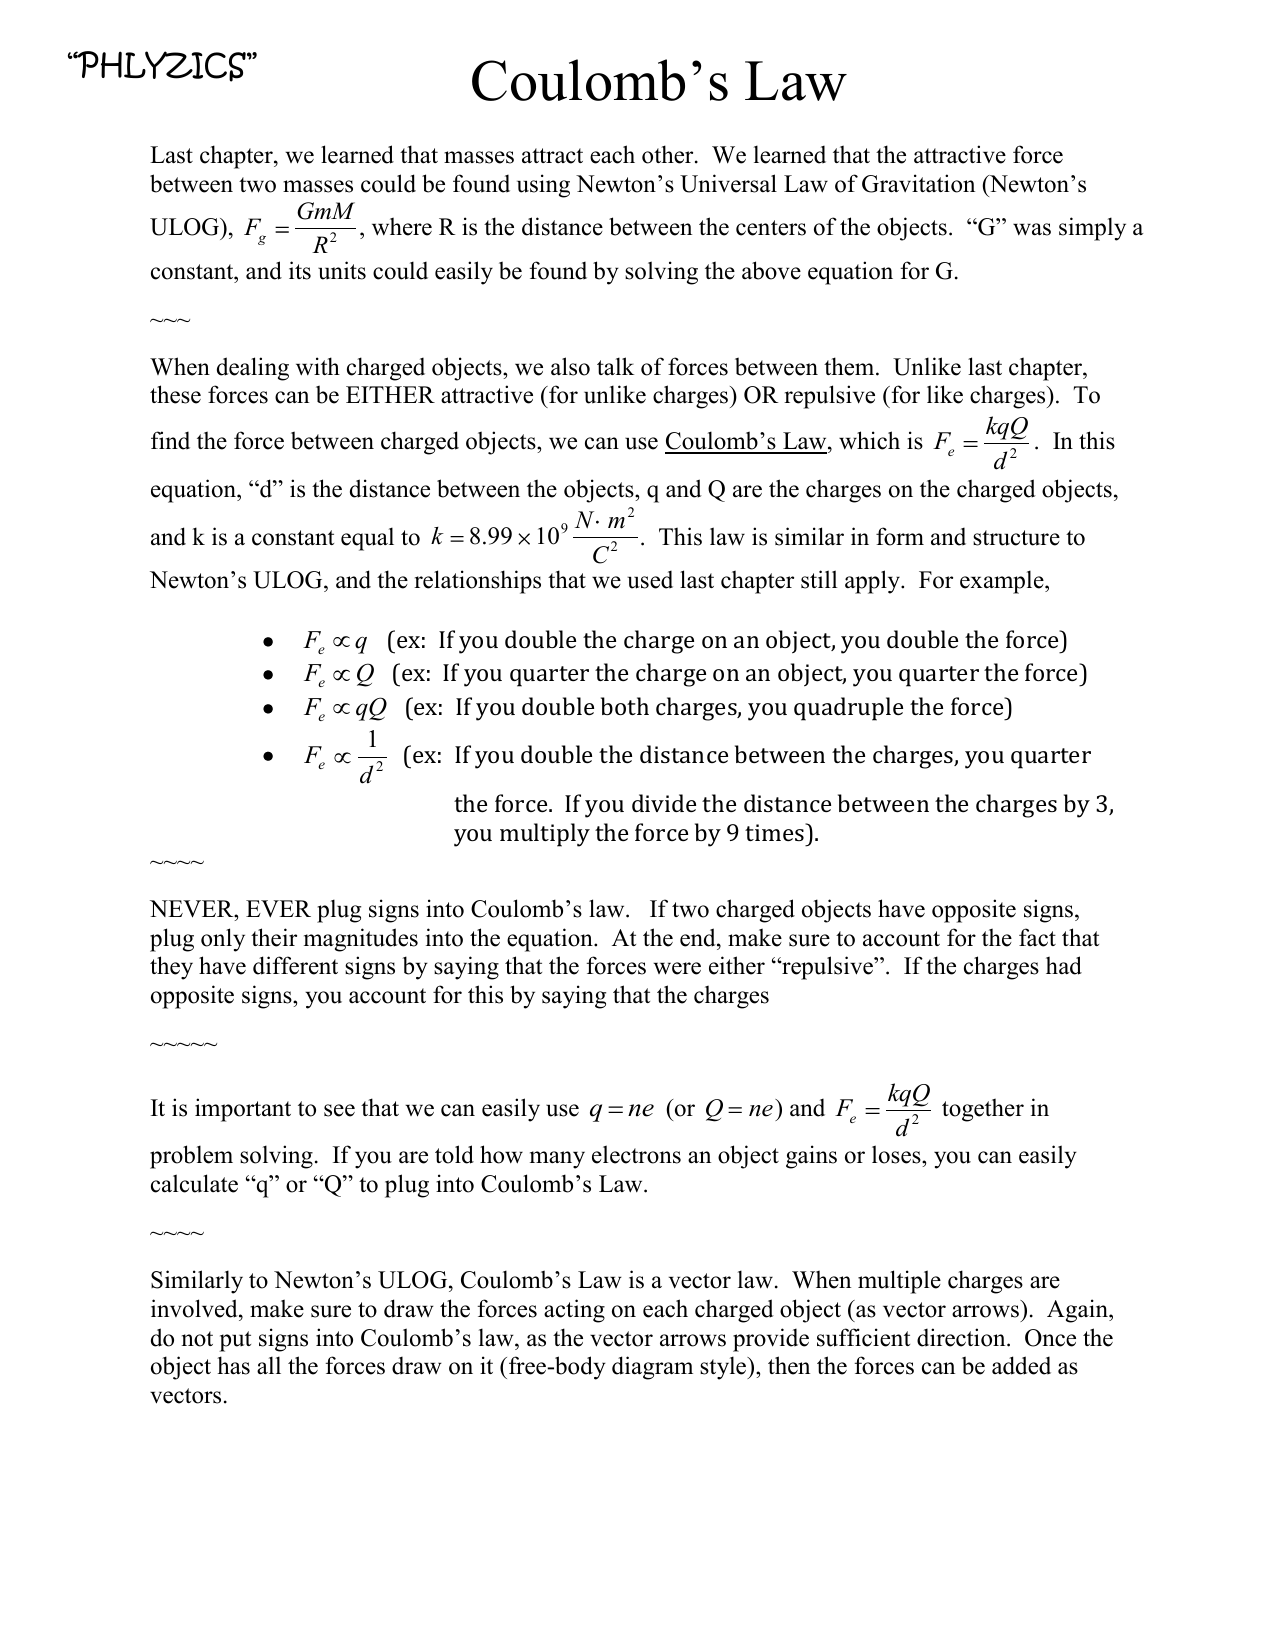 D4and5 Coulombs Law Worksheet with reading assignment attached